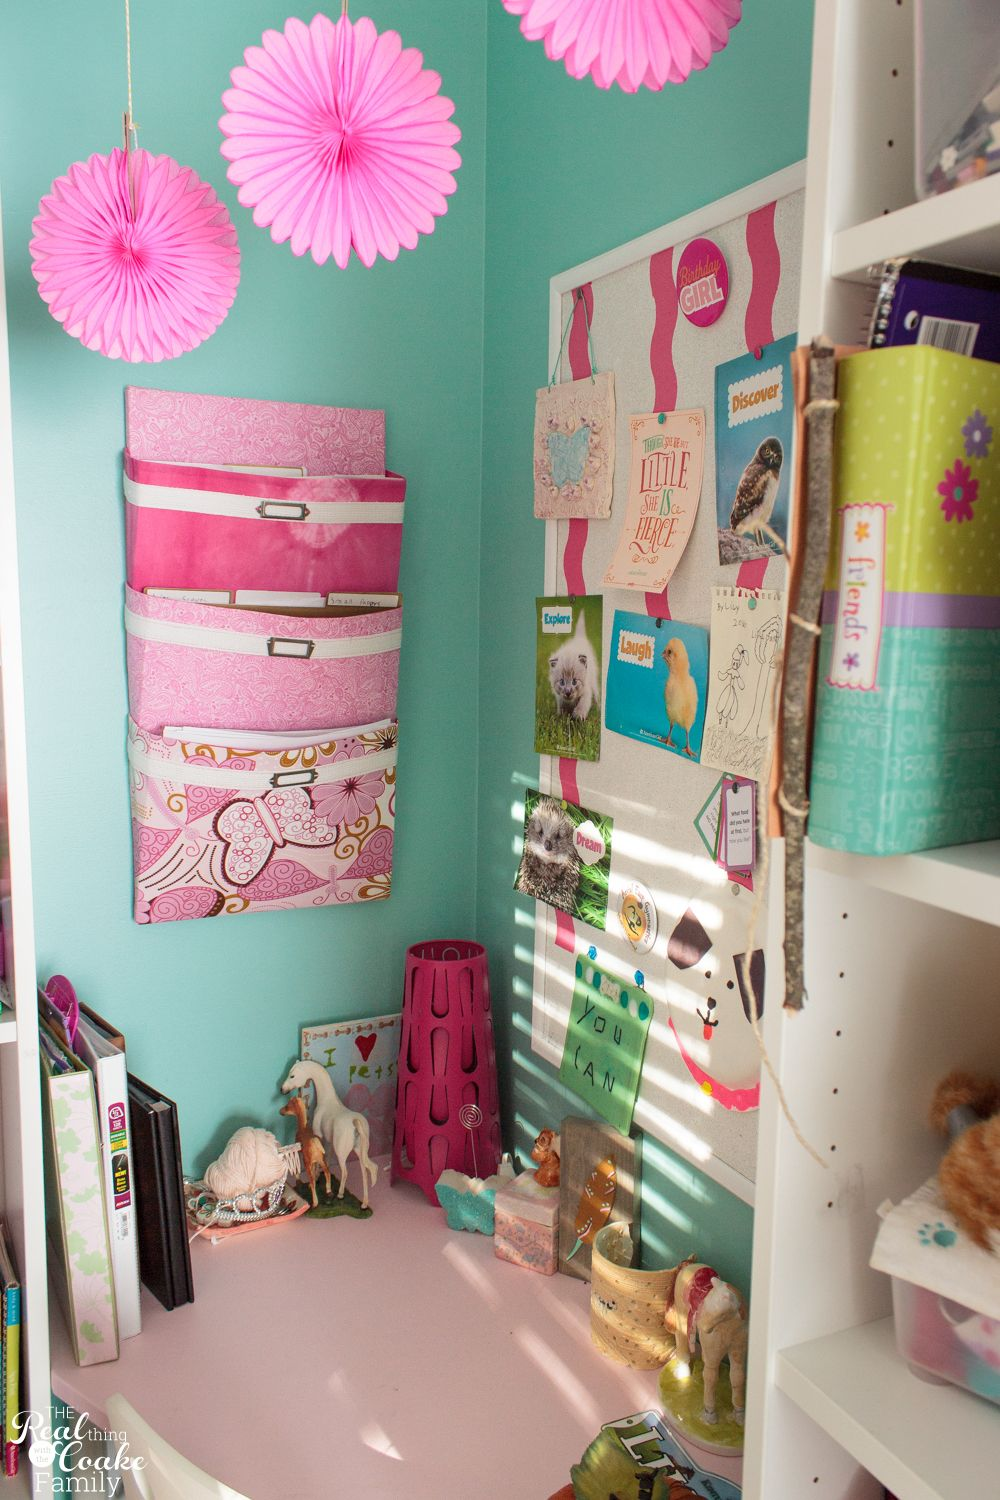 Cute bedroom ideas for tween girls house kid 39 s room - Cute bedroom ideas for tweens ...